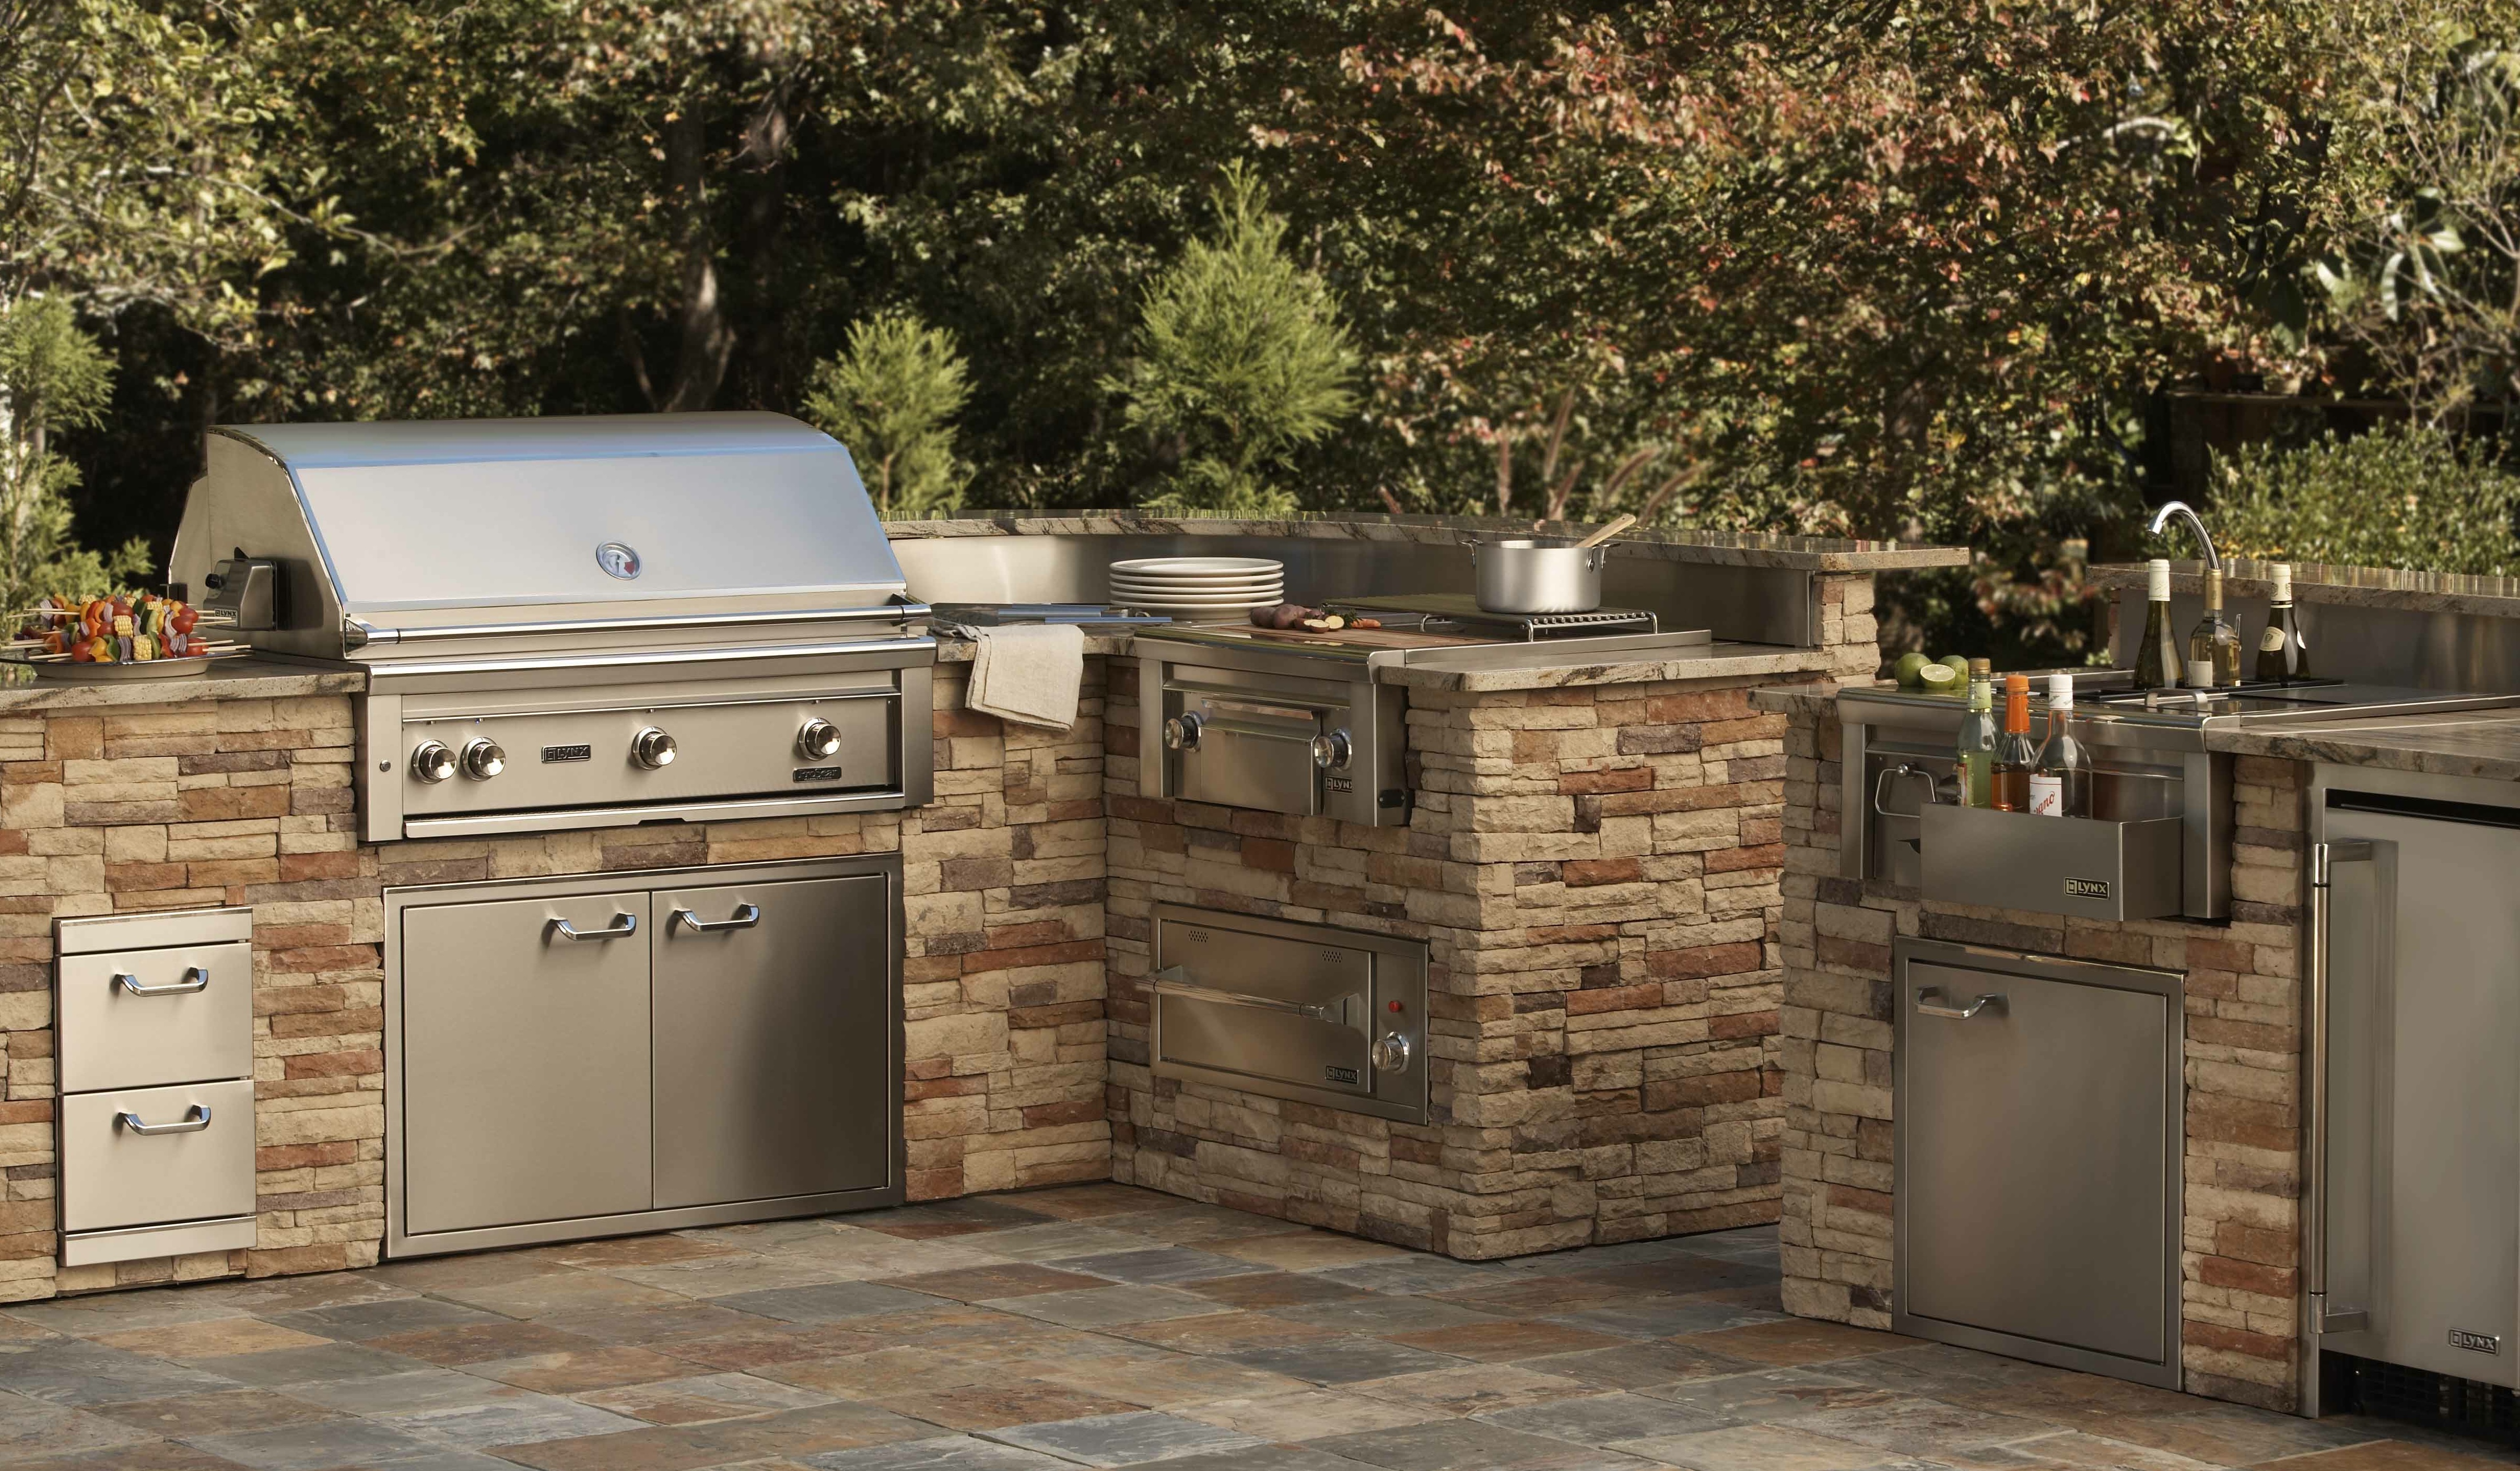 Kitchen appliances names of kitchen appliances - Lynx Grills And Outdoor Cooking